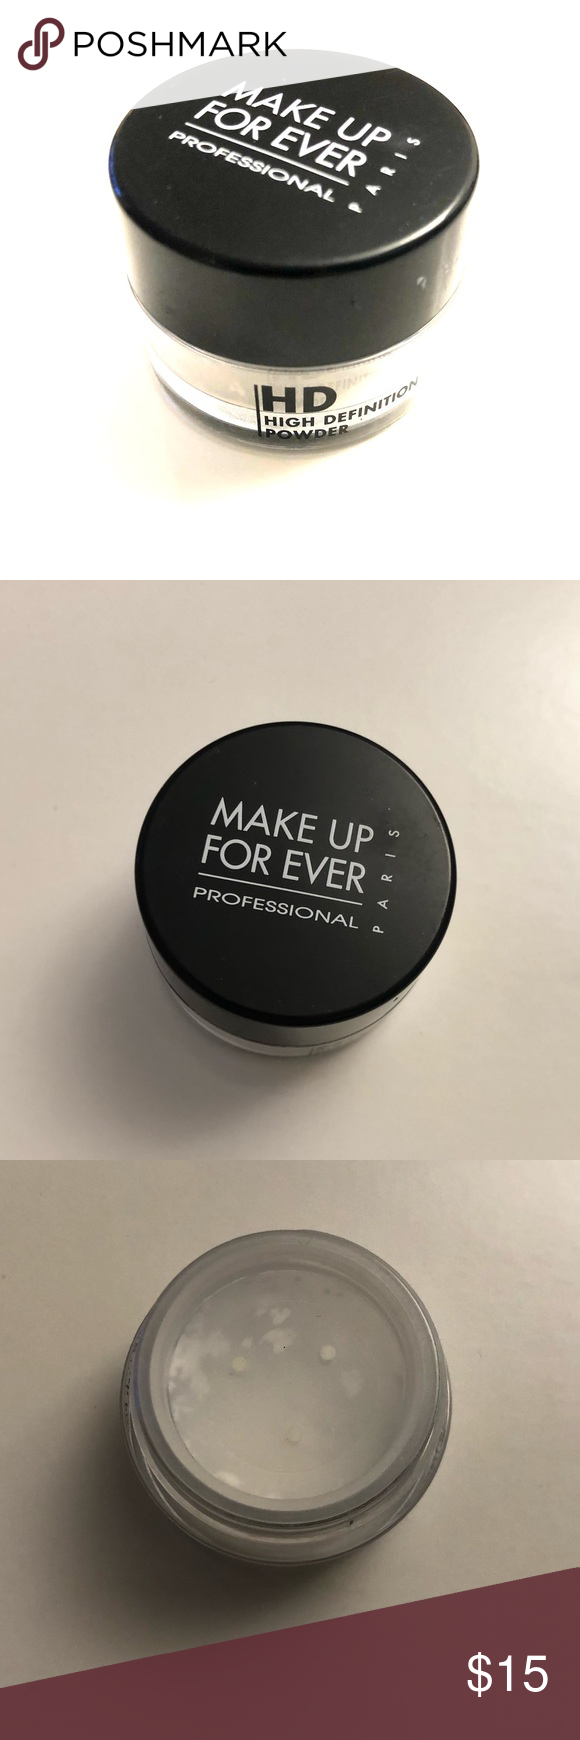 Makeup Forever Hd Finishing Powder In 2020 Makeup Forever Hd Makeup Setting Powder Makeup Forever